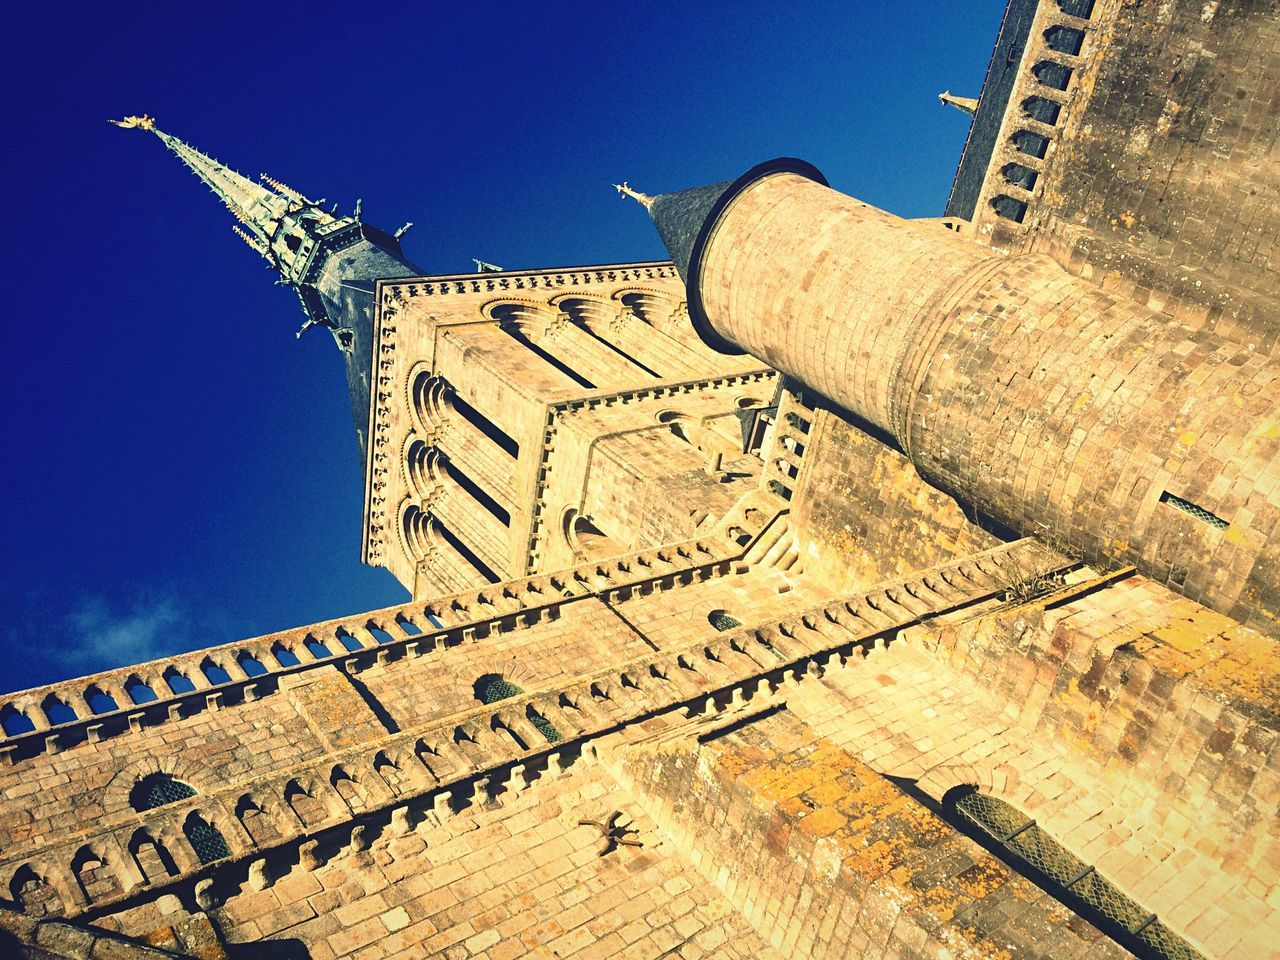 Architecture Built Structure Low Angle View History Blue Sunlight Outdoors No People Clear Sky Day Sky Ancient Mont Saint-Michel France The Architect - 2017 EyeEm Awards Neighborhood Map